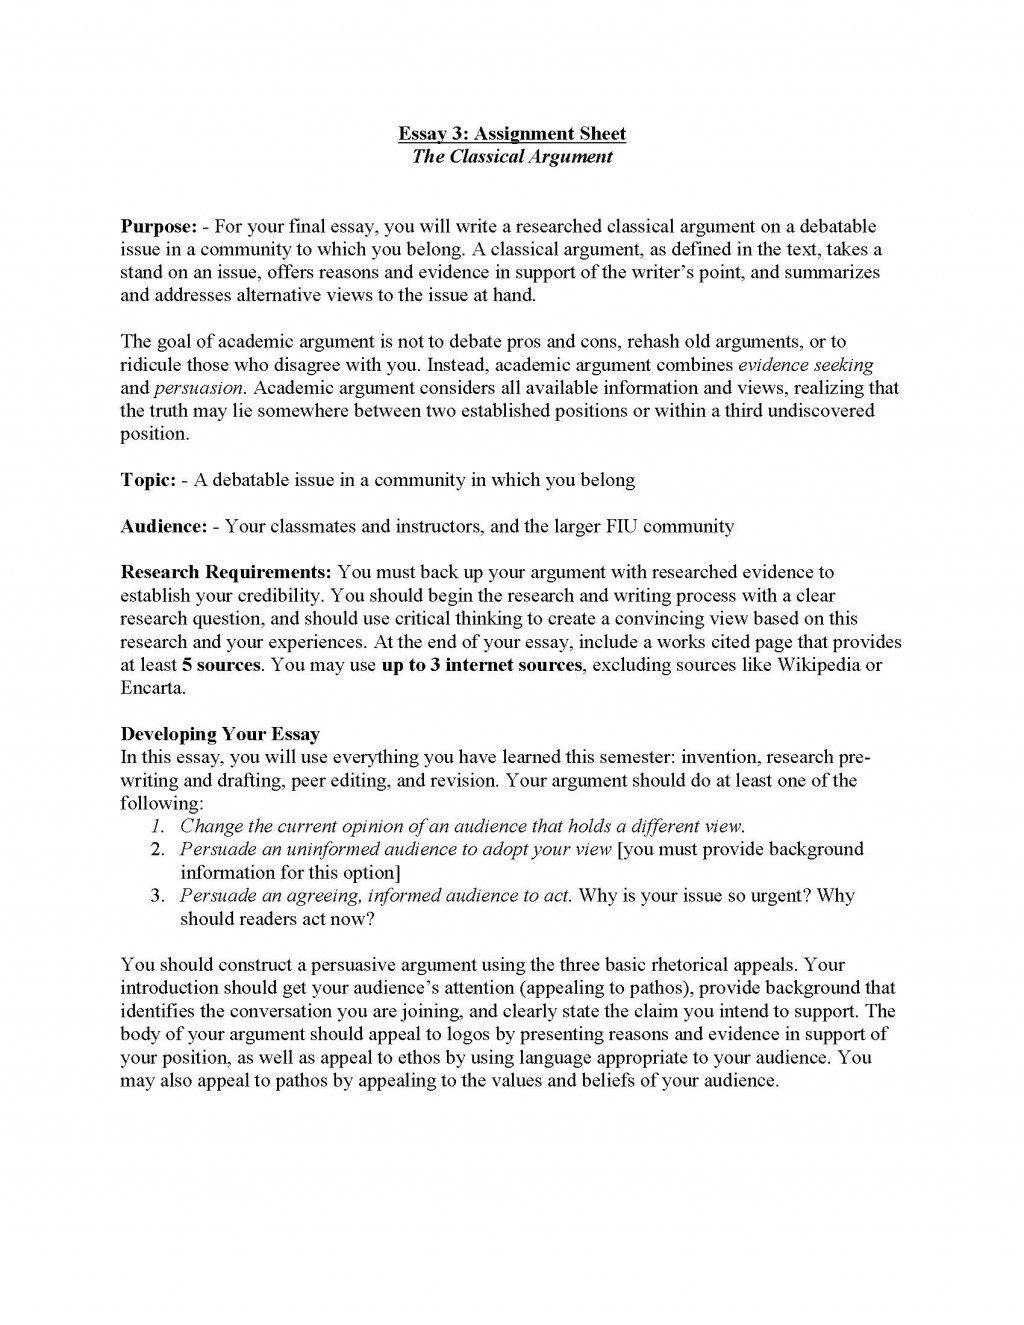 003 Essay Example Classical Argument Unit Assignment Page 1 Proposal Unique Examples Large